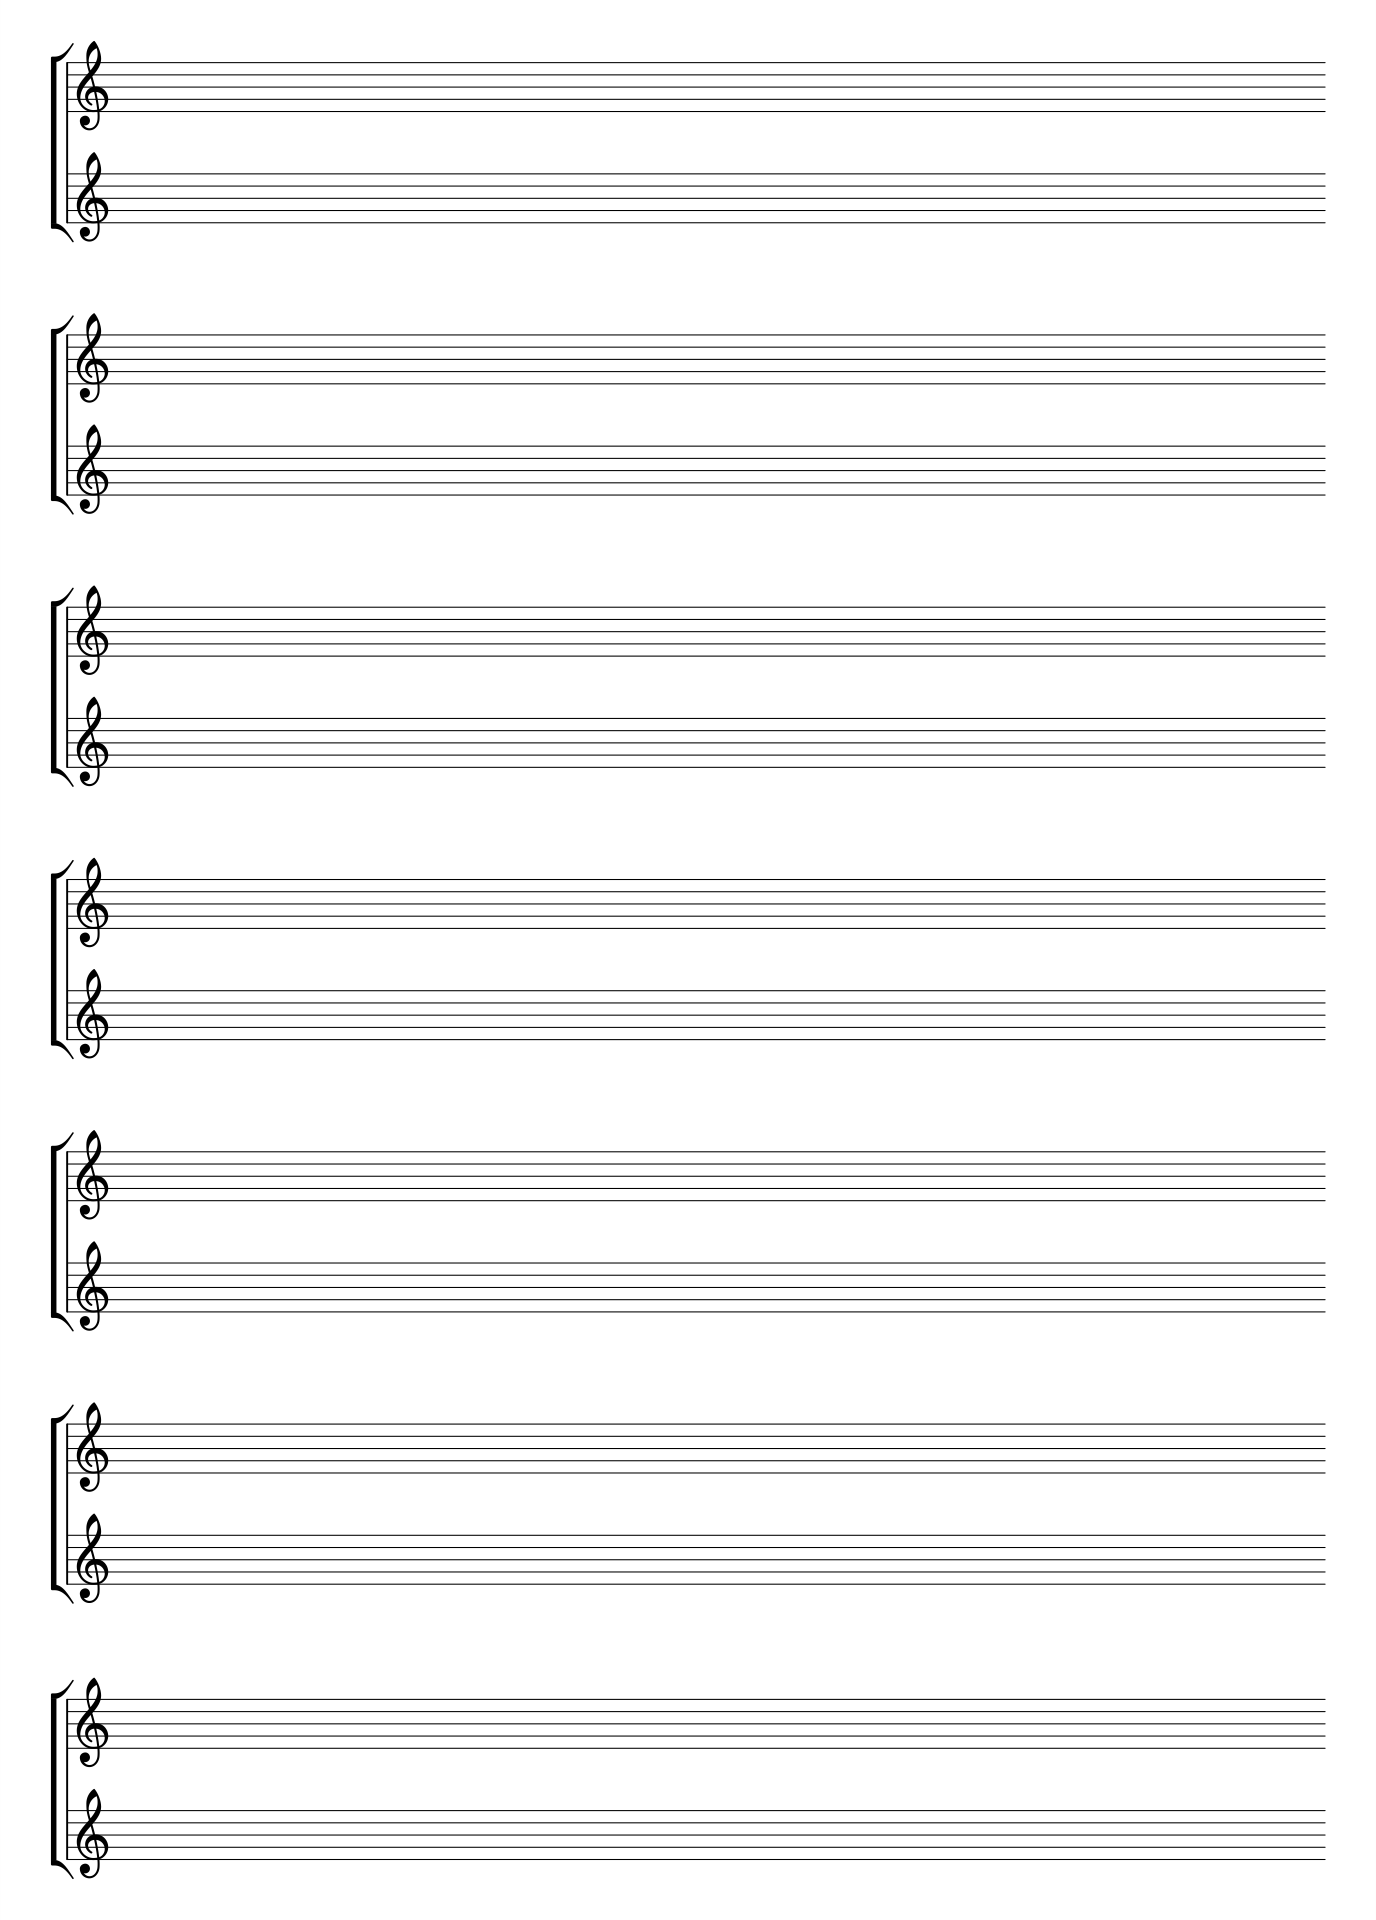 6 best images of printable blank note sheets music note sheets blank printable blank lined. Black Bedroom Furniture Sets. Home Design Ideas